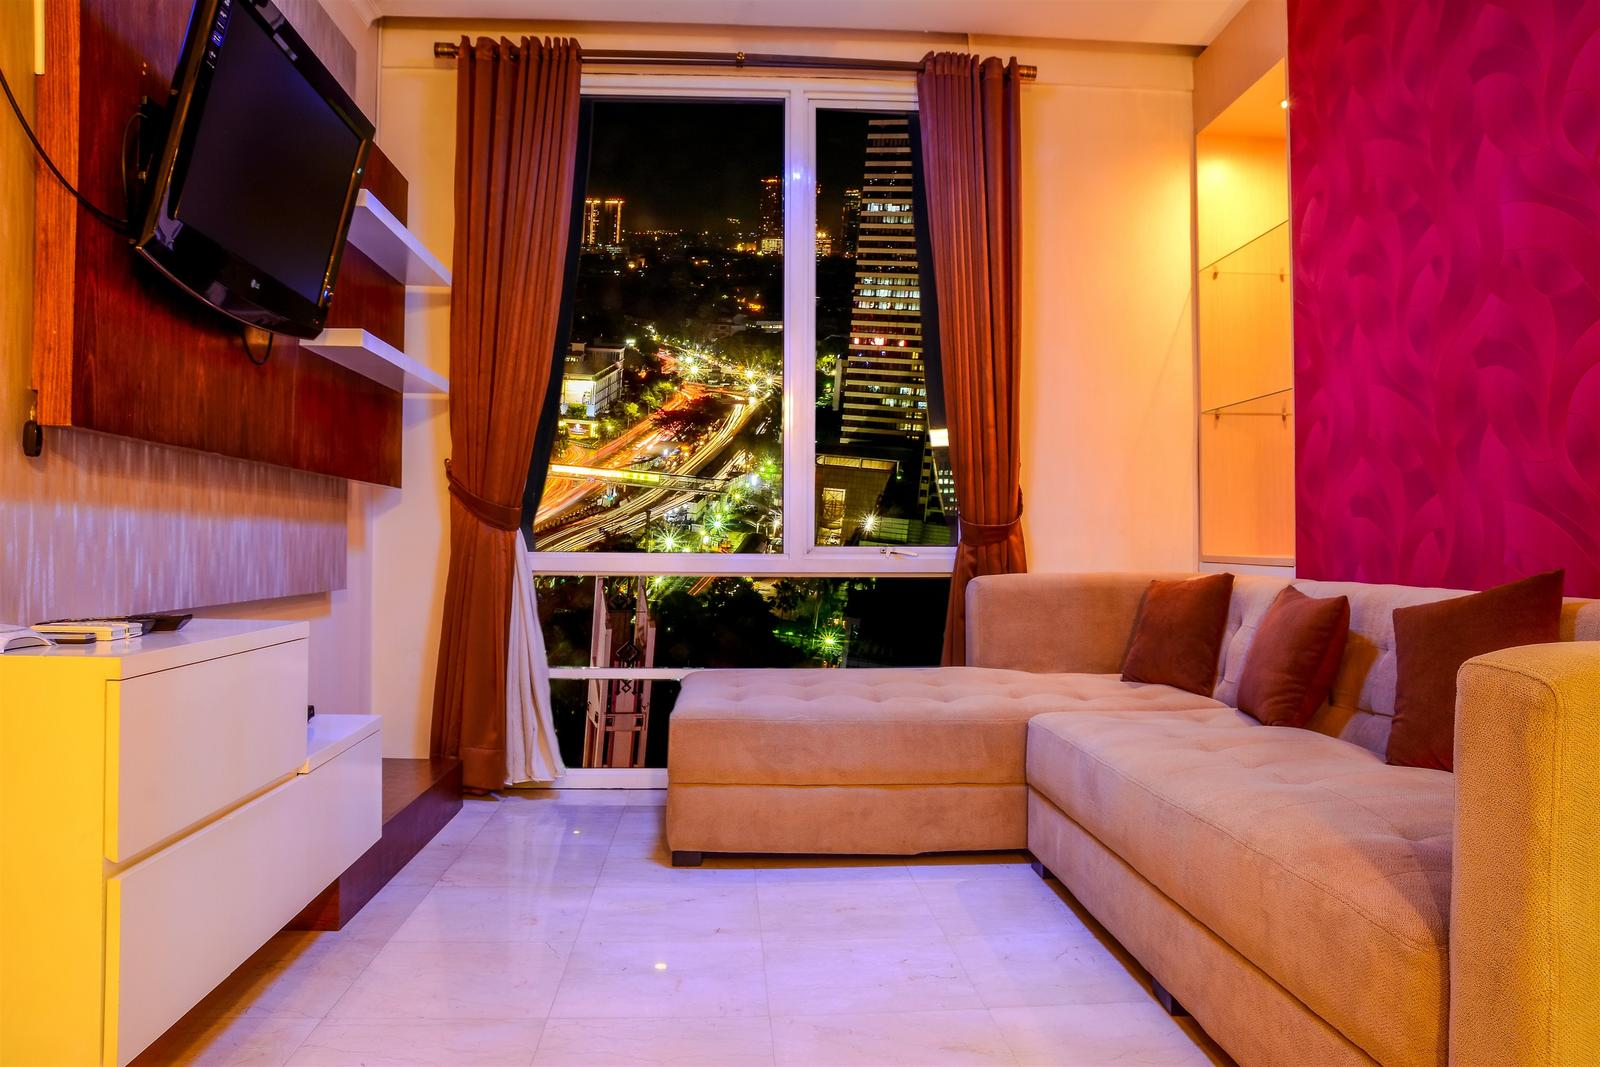 FX Residence Sudirman Senayan - Modern 2 BR Apartment @ FX Residence with City View By Travelio